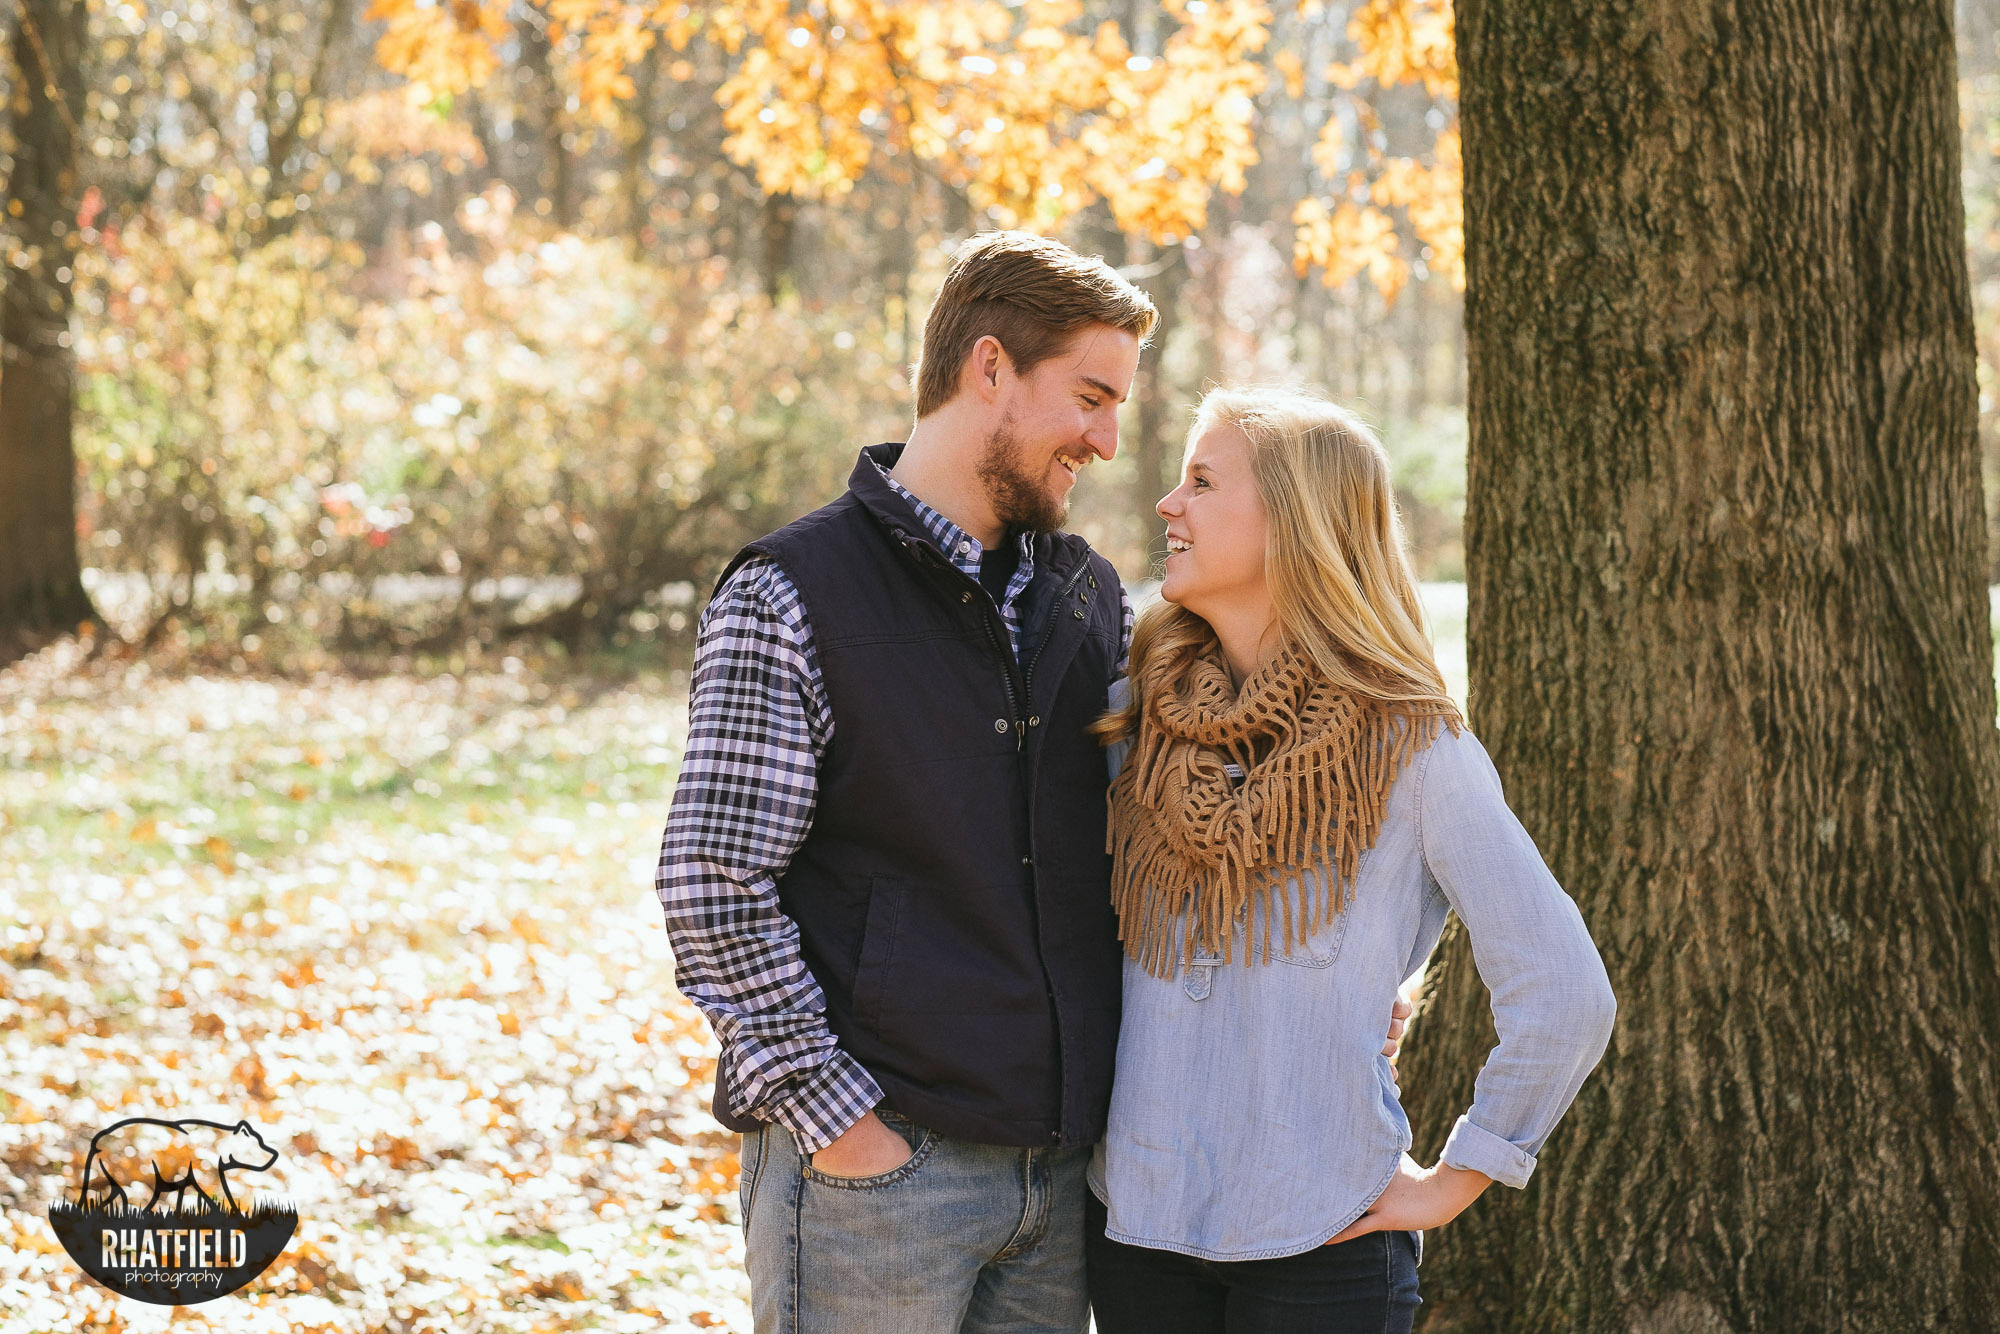 couple-laughing-fall-trees